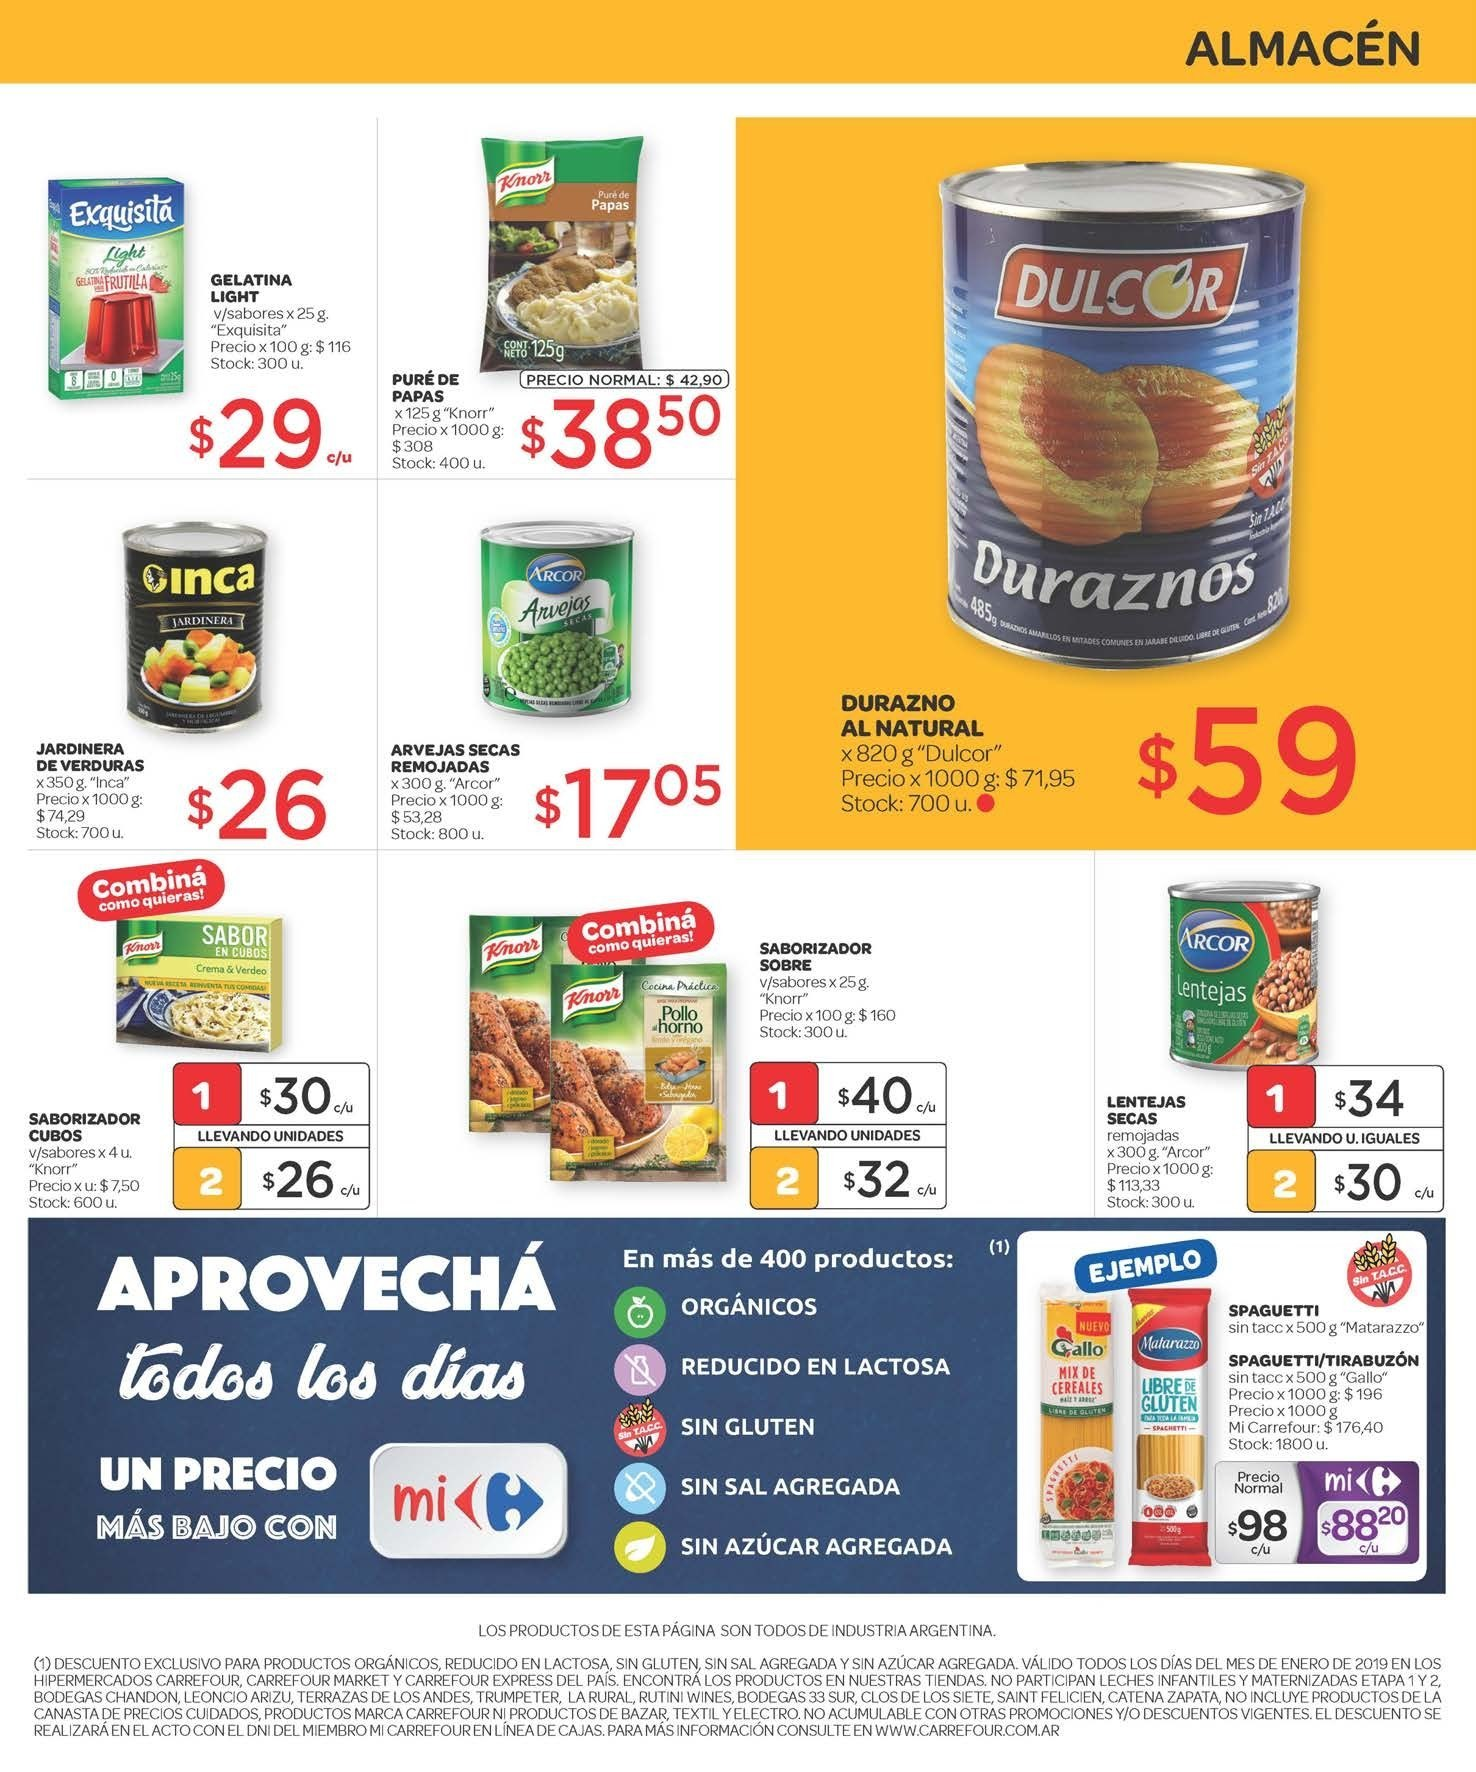 Folleto actual Carrefour - 16.1.2019 - 23.1.2019 - Ventas - lenteja 82b253aaefa8